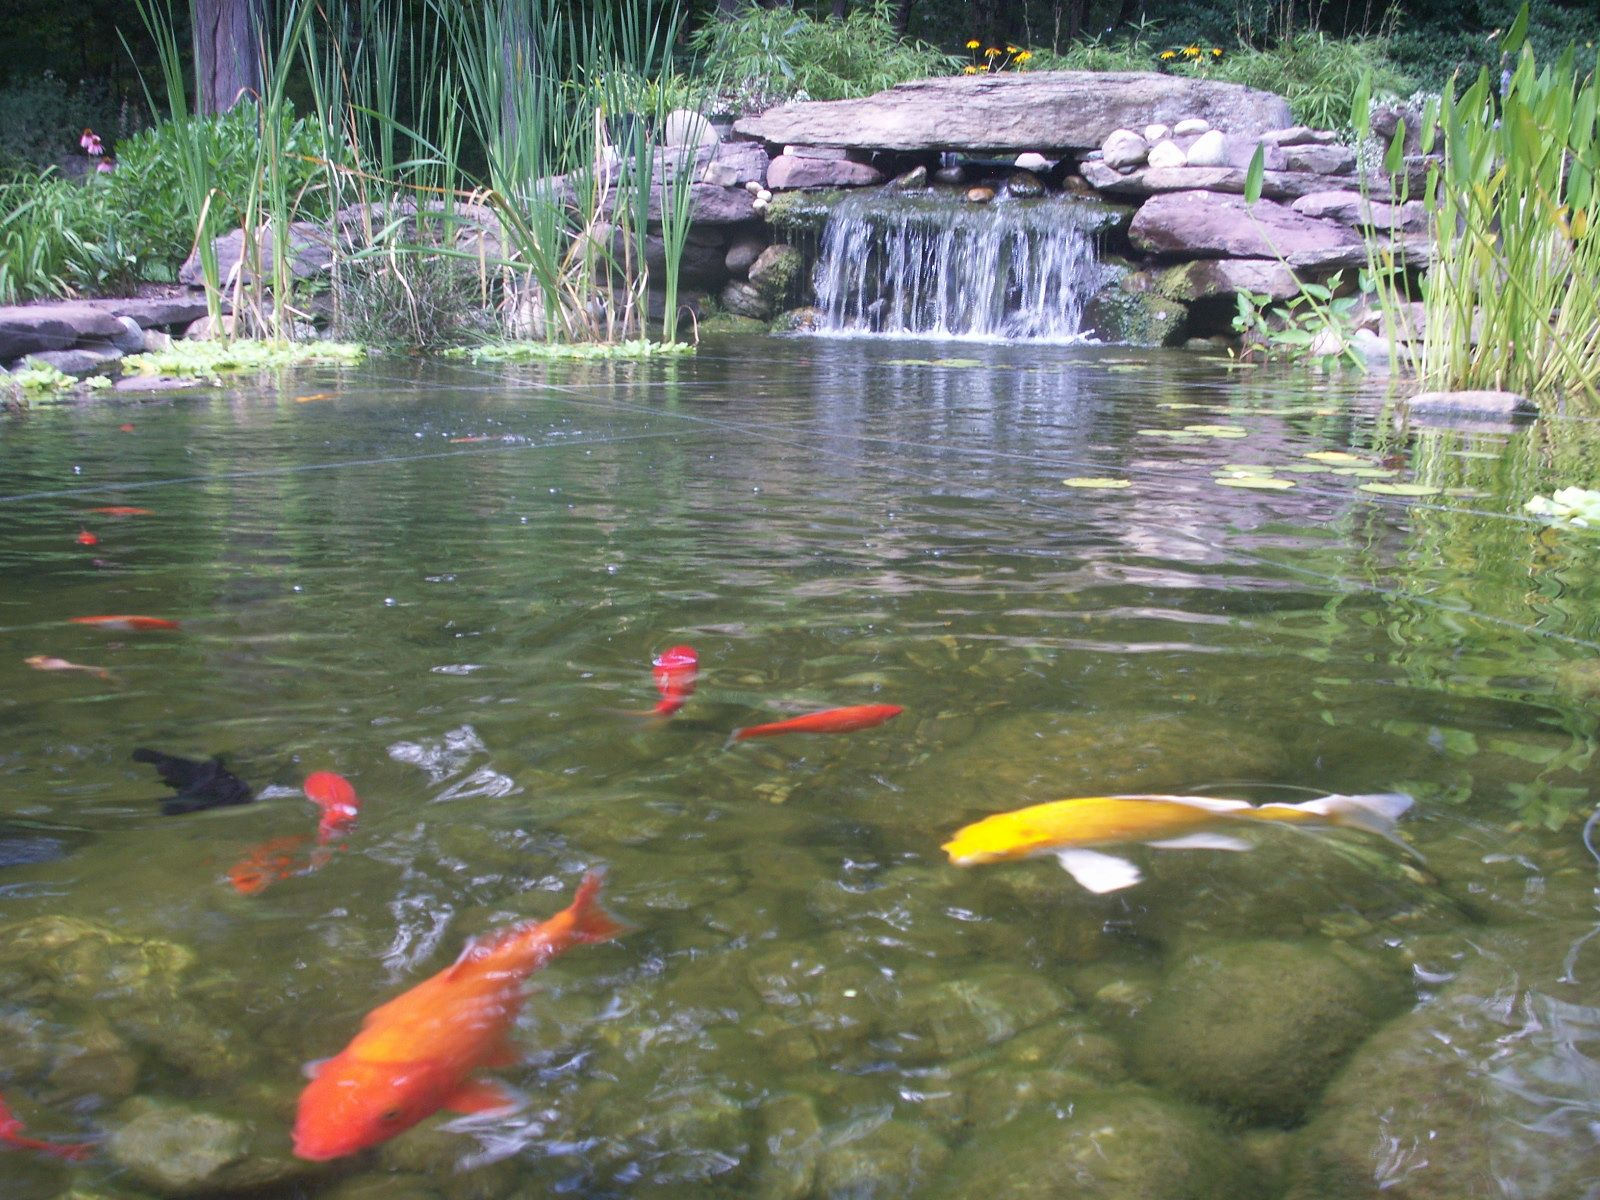 Beautiful fishies gardening water gardens my dream for Garden pond videos